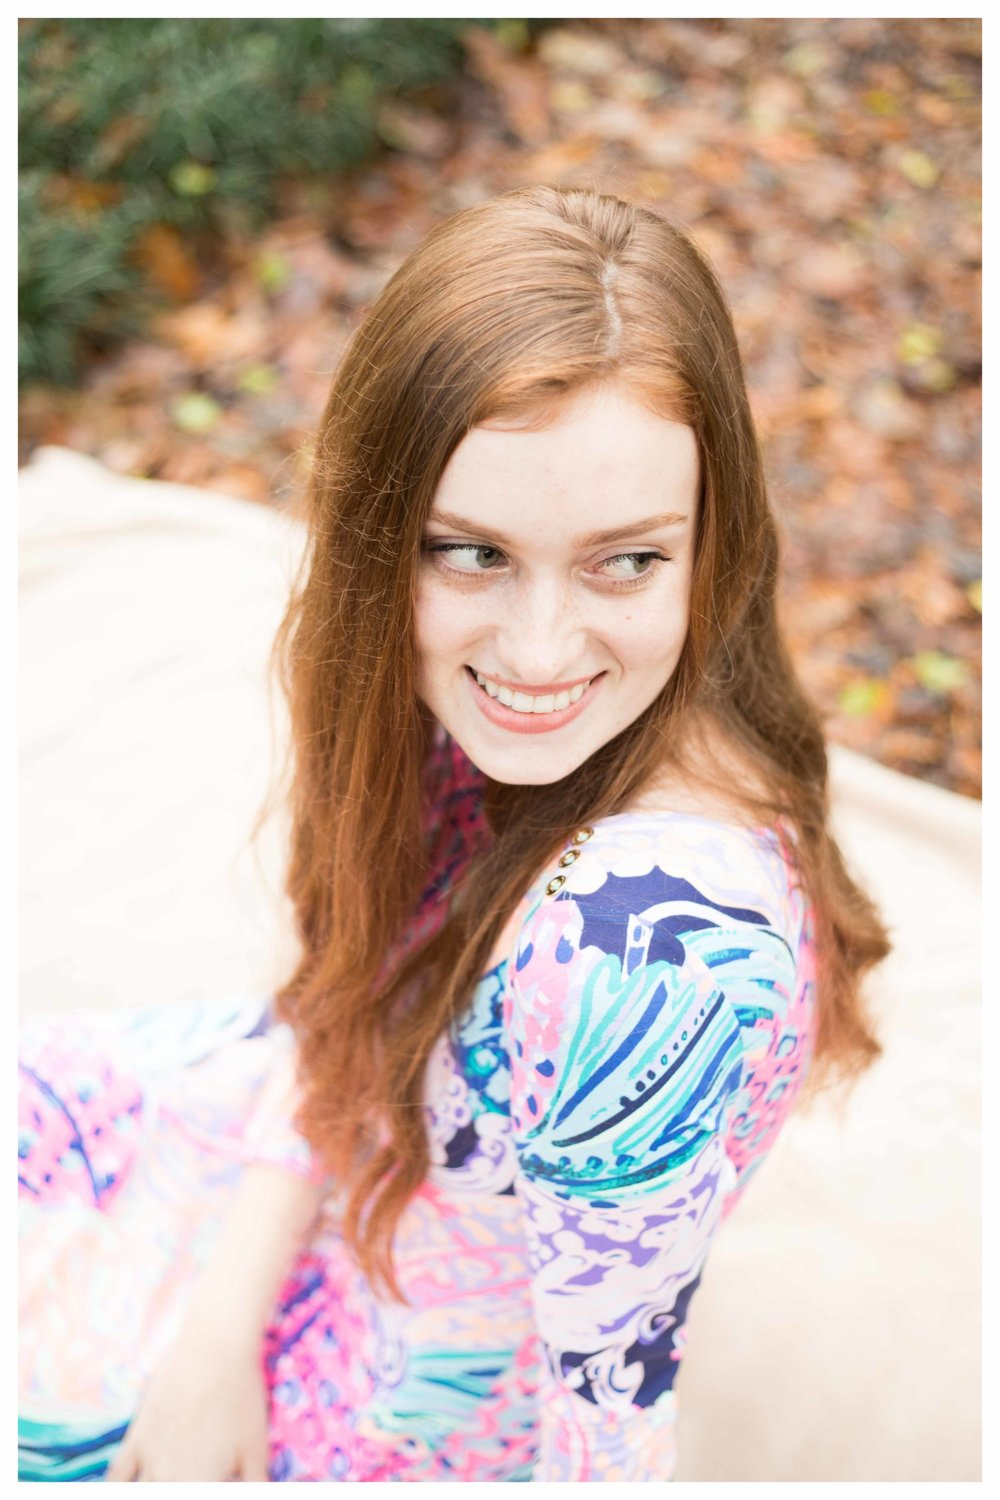 lillie_senior_2018_blog-14.jpg